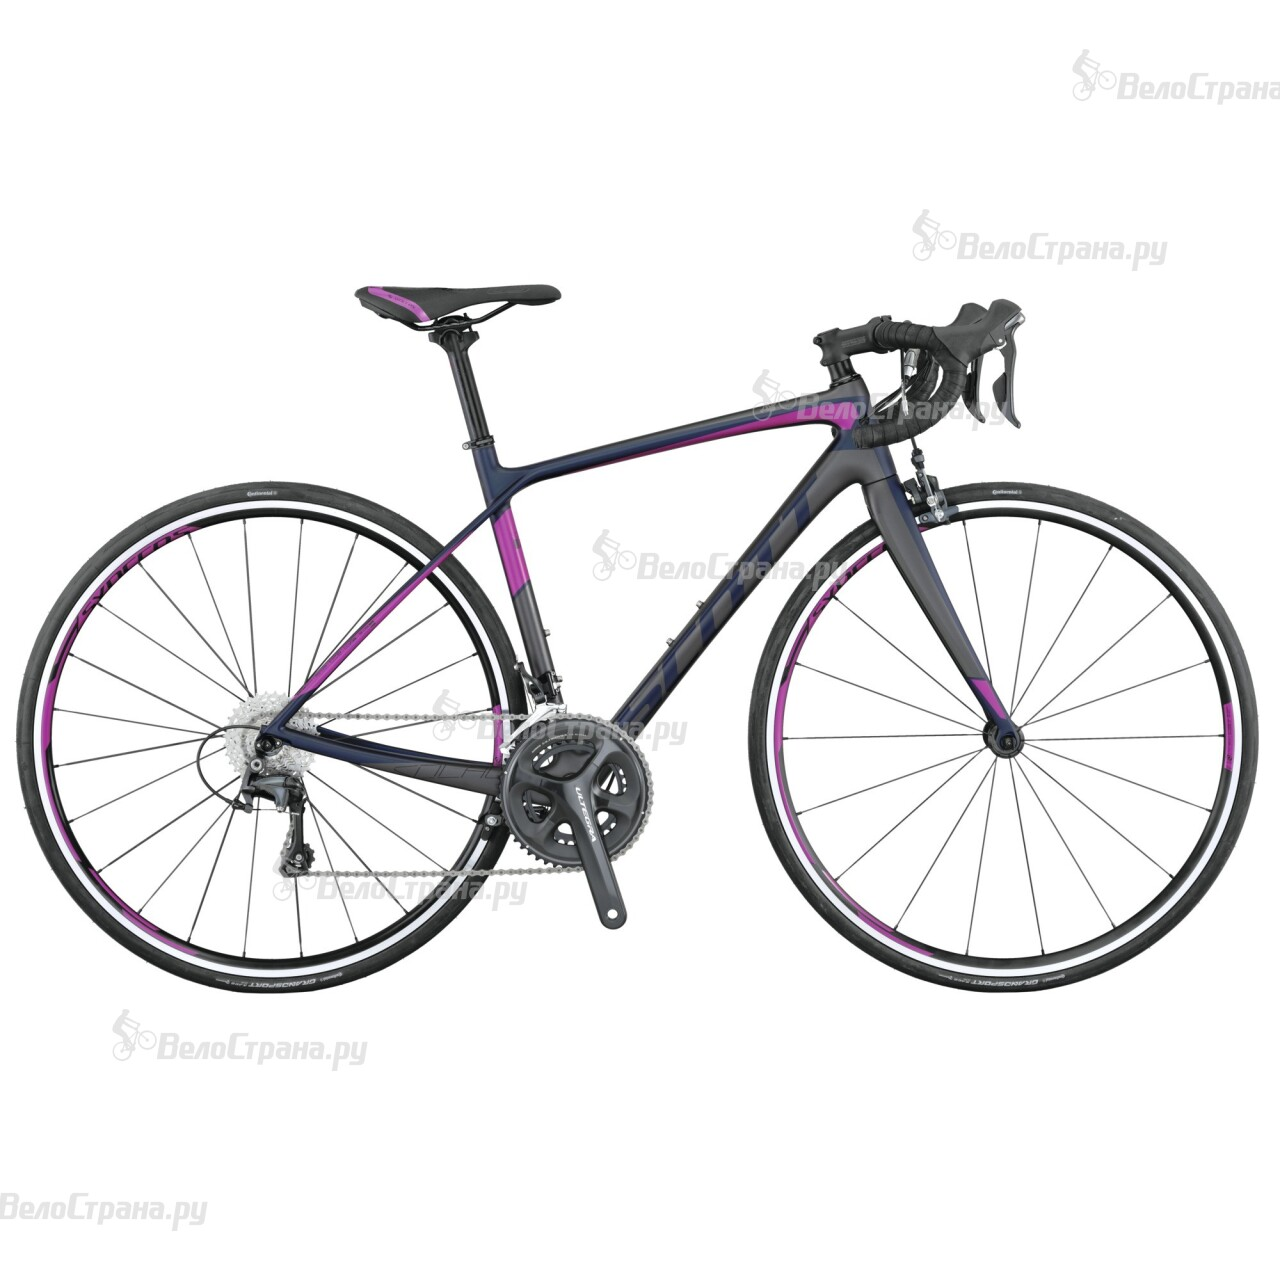 Велосипед Scott Contessa Solace 15 Compact (2015) велосипед scott solace 30 2015